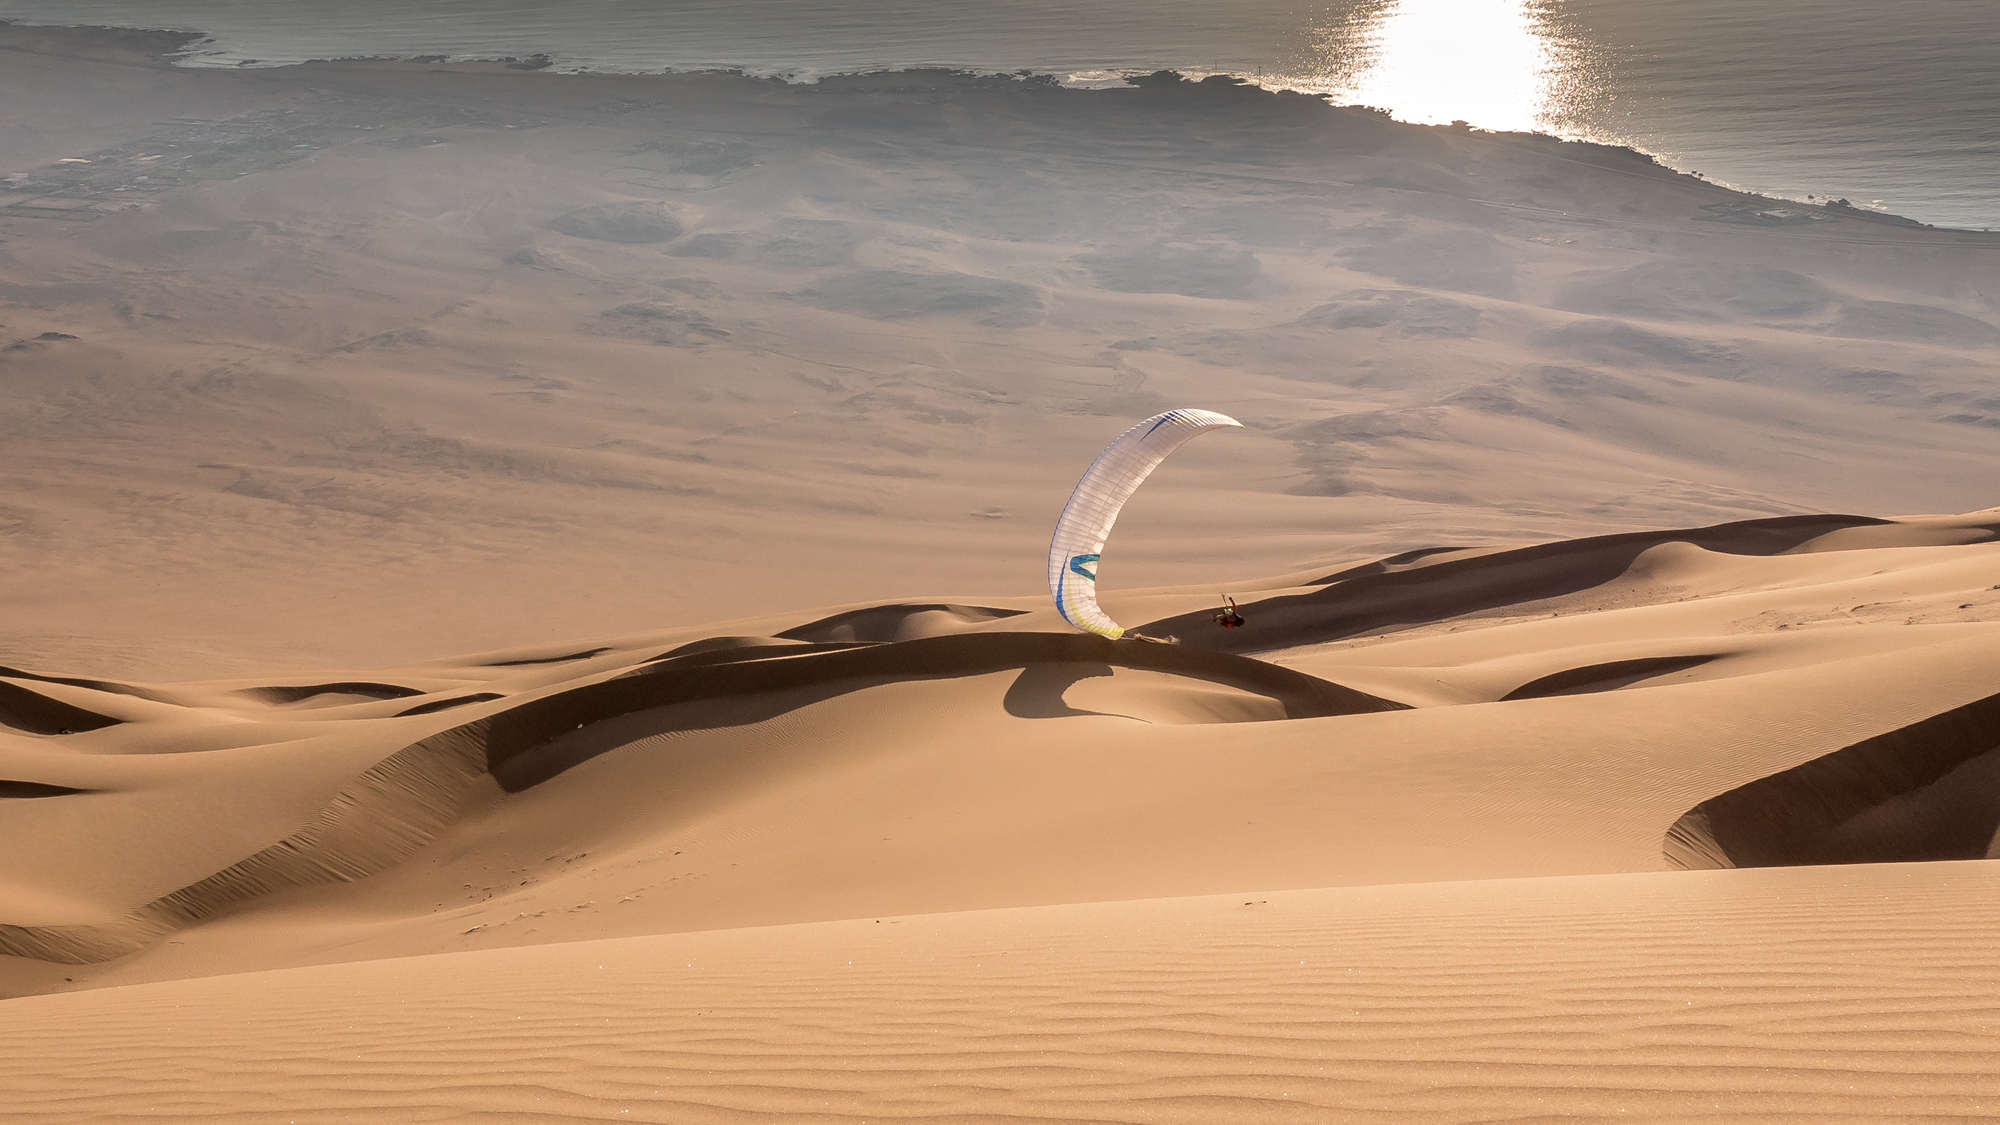 Dune mistique Francois ragolski Theta V Ricoh Skywalk Syride supair Picture by Alex Aimard-66